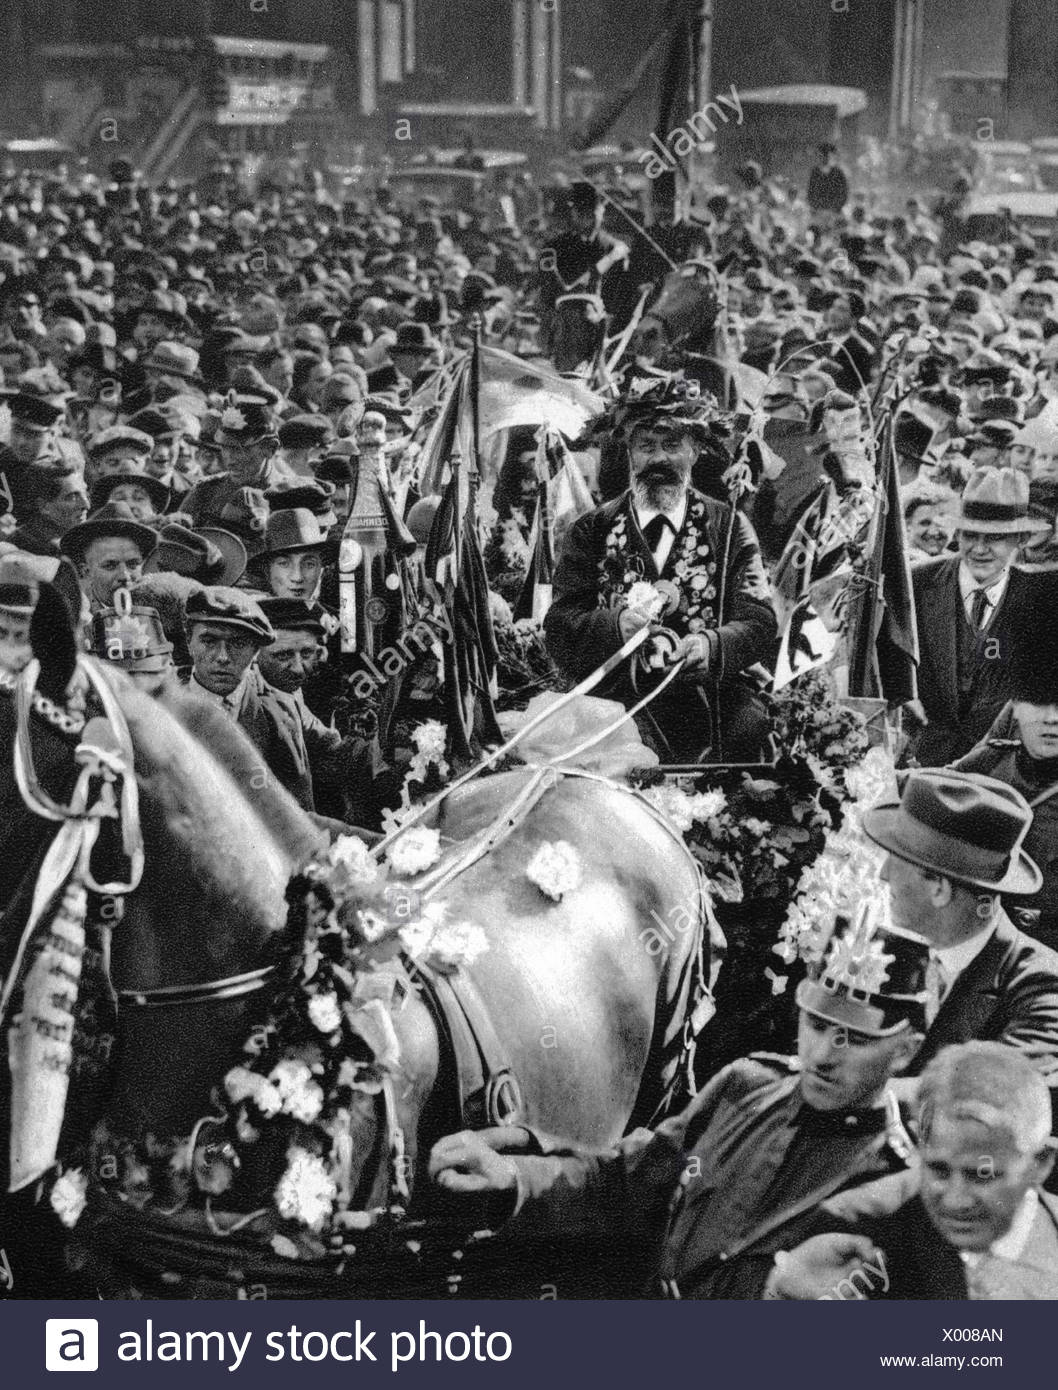 Hartmann, Gustav, 4.8.1859 - 23.12.1938, Berlin coachman, called 'The Iron Gustav', arrival in Berlin, 1928, Additional-Rights-Clearances-NA - Stock Image